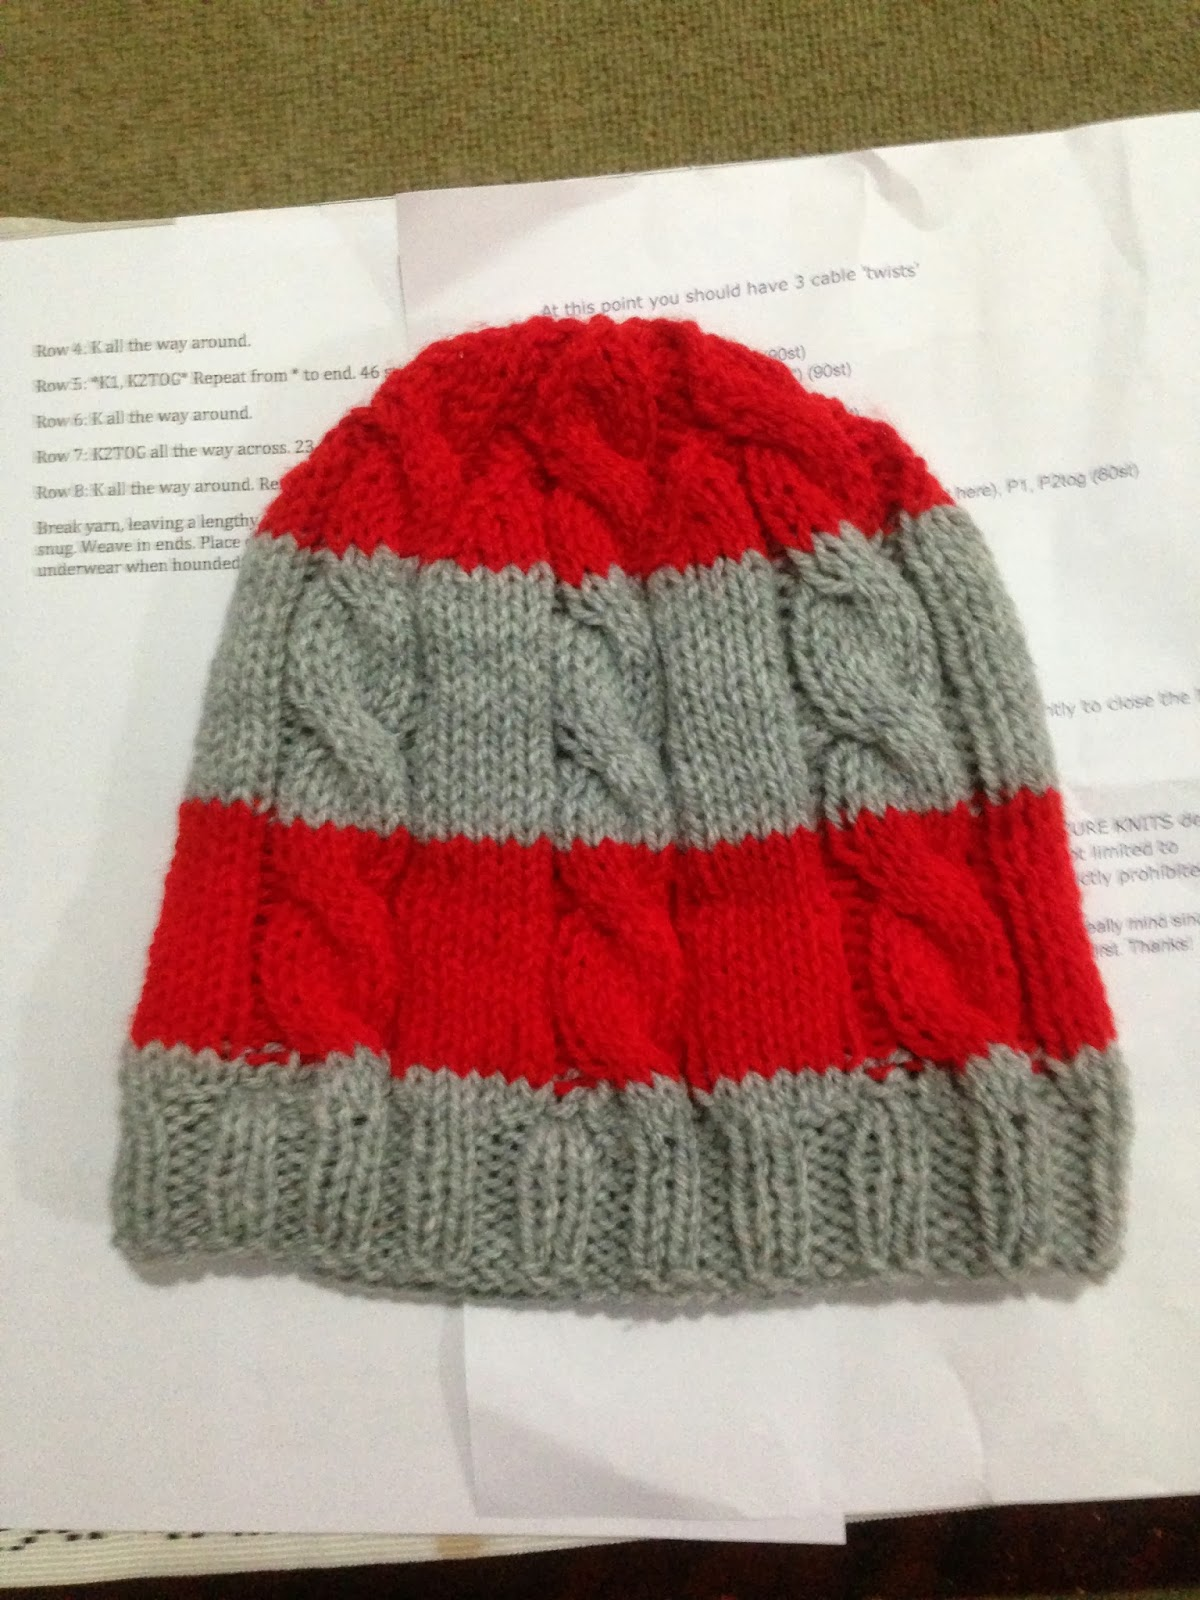 Knitting Circle Near Me : Hari ku cable hat knitting